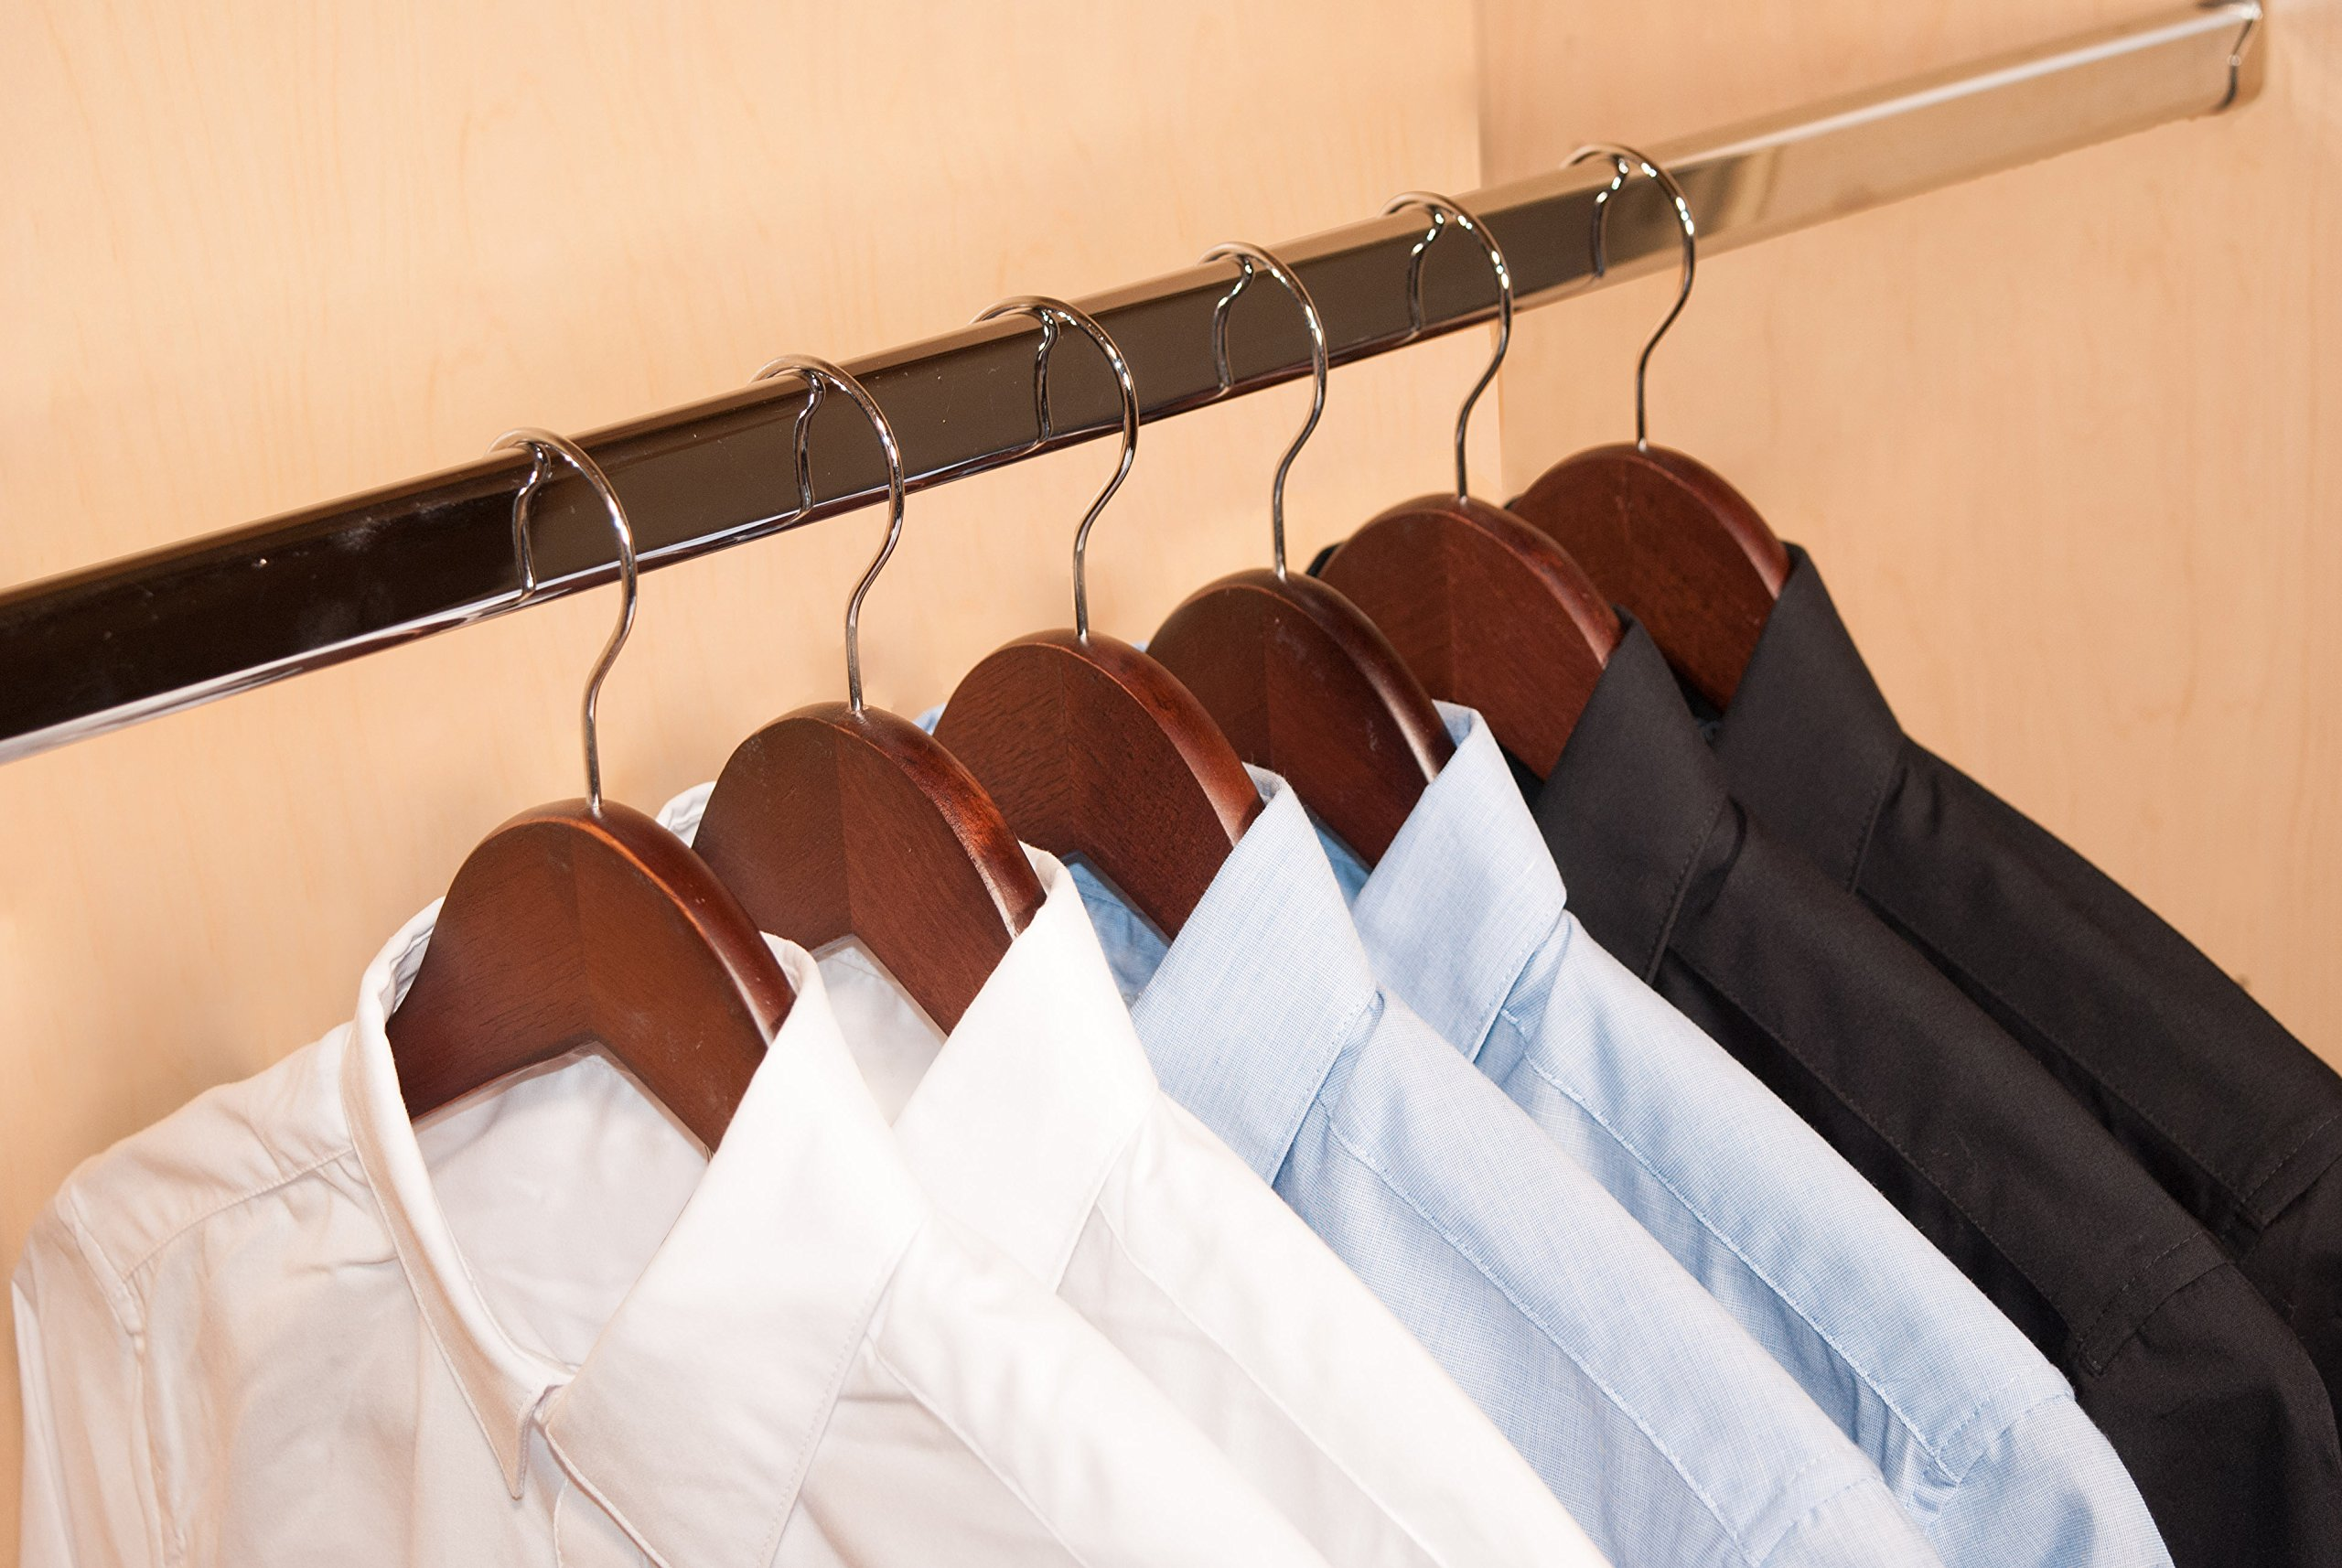 Topline Classic Wood Shirt Hangers - Cherry Finish (10-Pack) by Topline (Image #6)